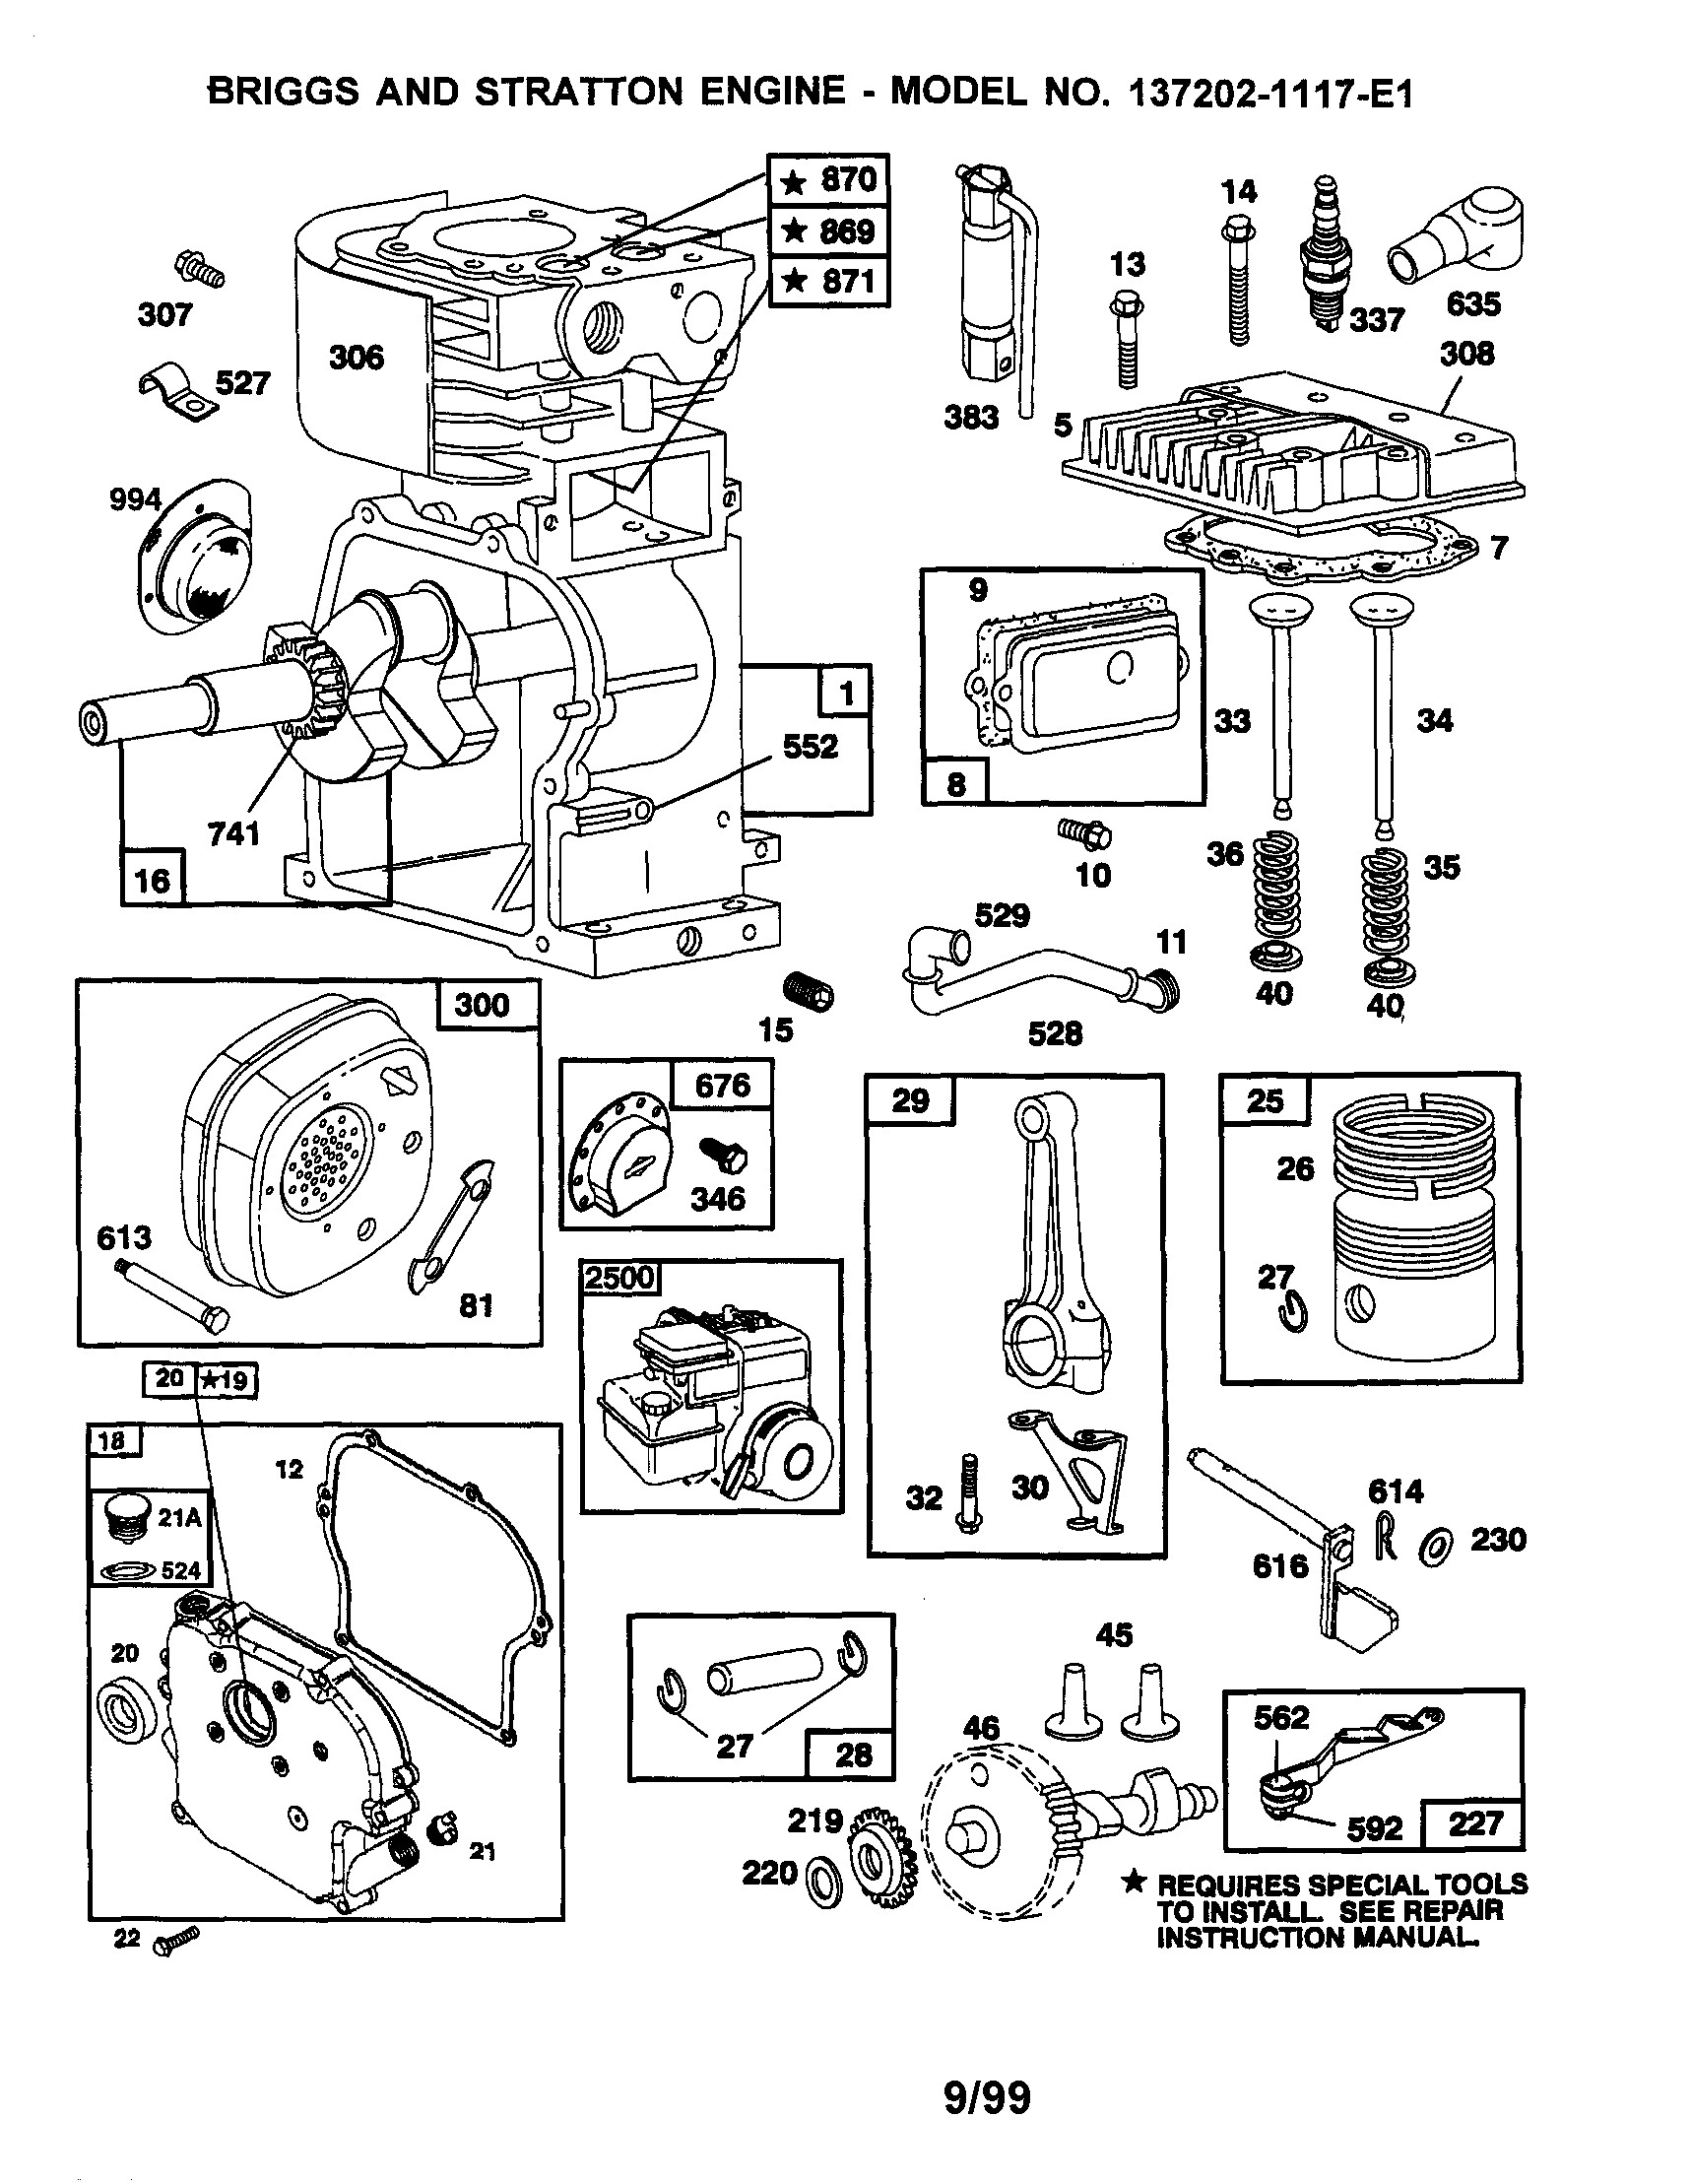 hight resolution of 20 hp briggs and stratton engine diagram wiring diagram used 20 hp briggs and stratton engine diagram moreover briggs and stratton